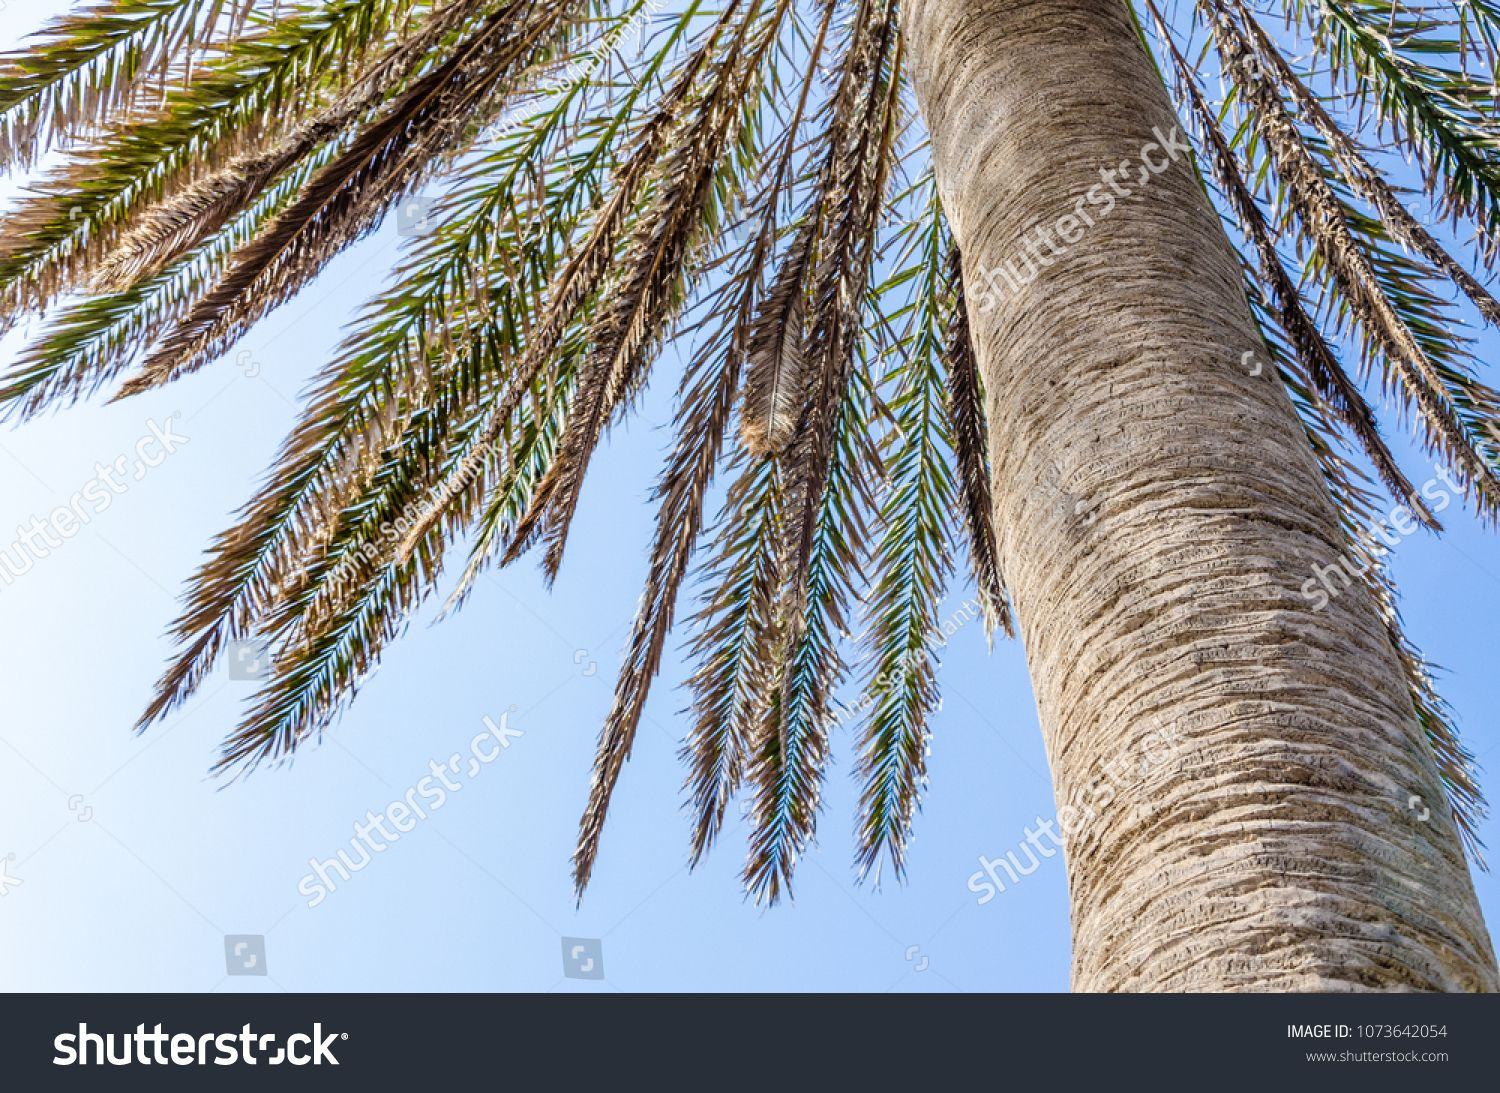 A part of palm tree's trunk and leaves against blue coloured sky. #Sponsored , #affiliate, #tree#trunk#part#palm